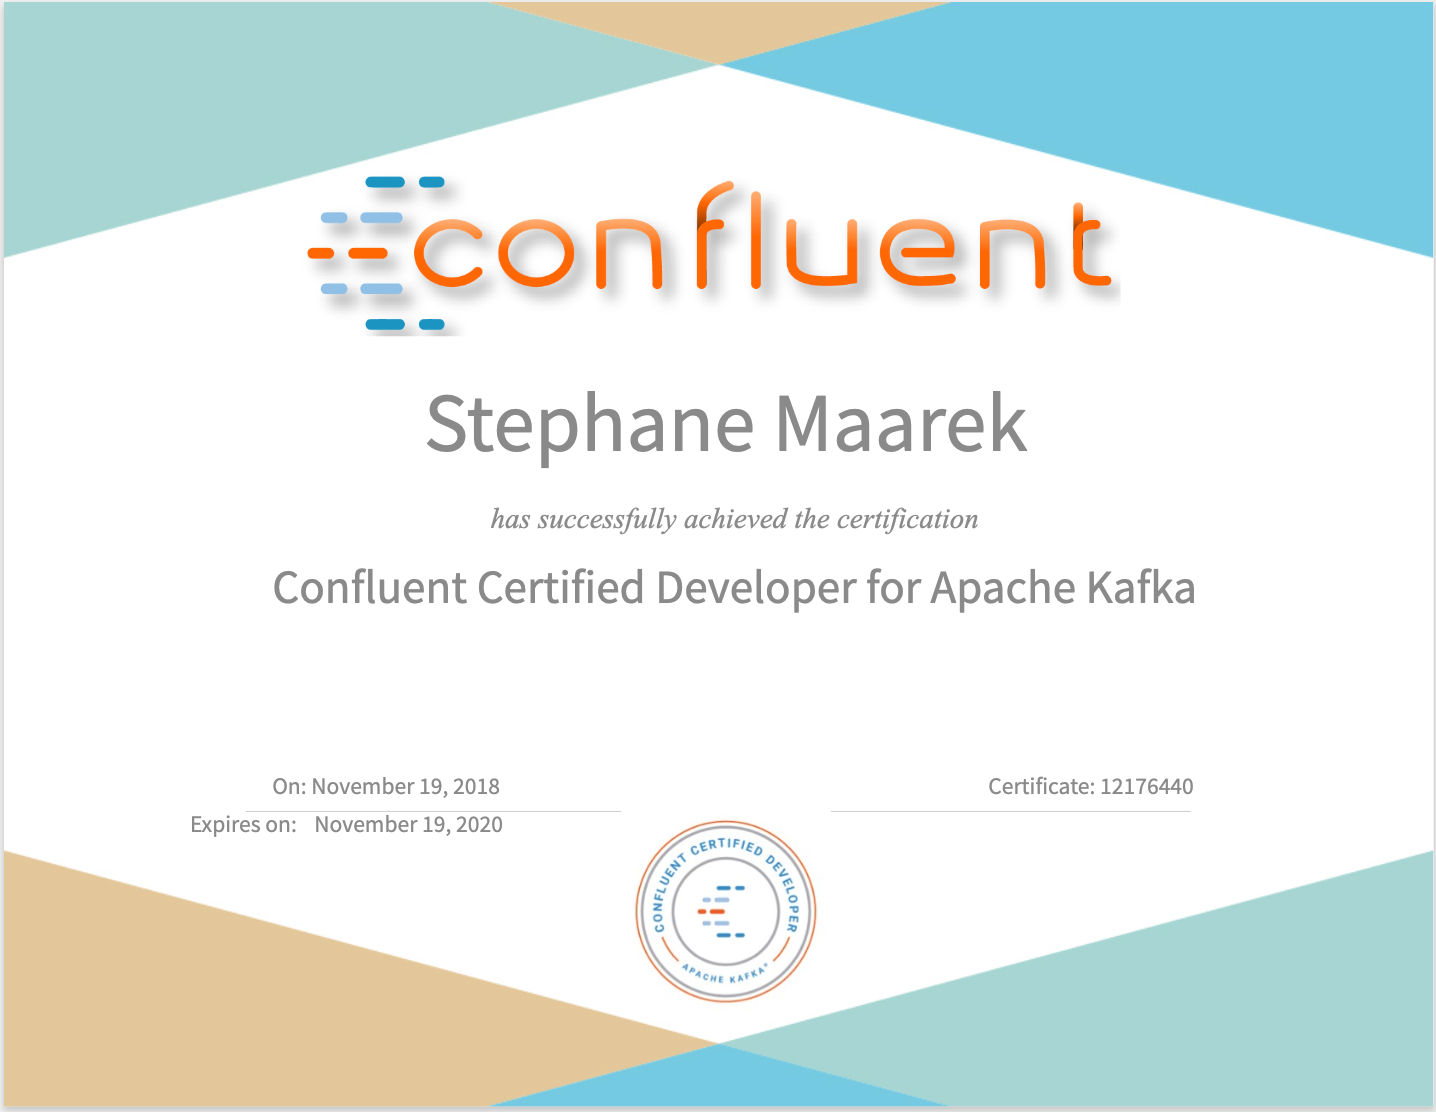 How to Prepare for the Confluent Certified Developer for Apache